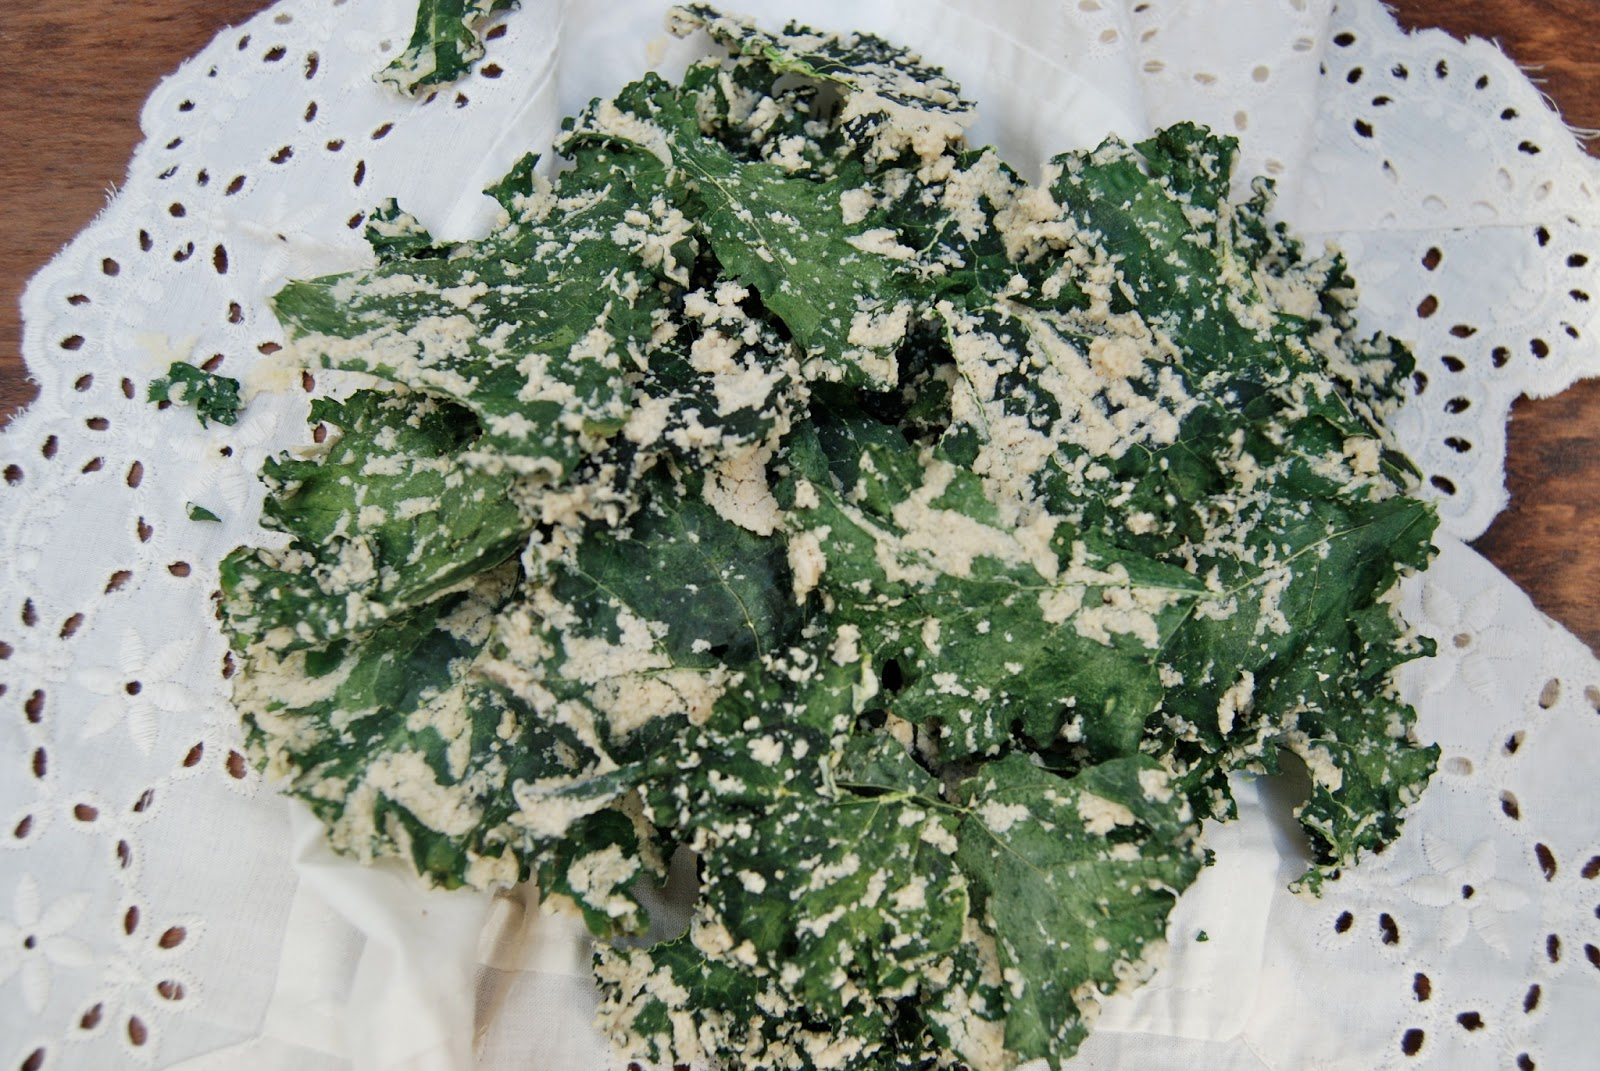 Crazy Sexy Kitchen Project: Kale Chips